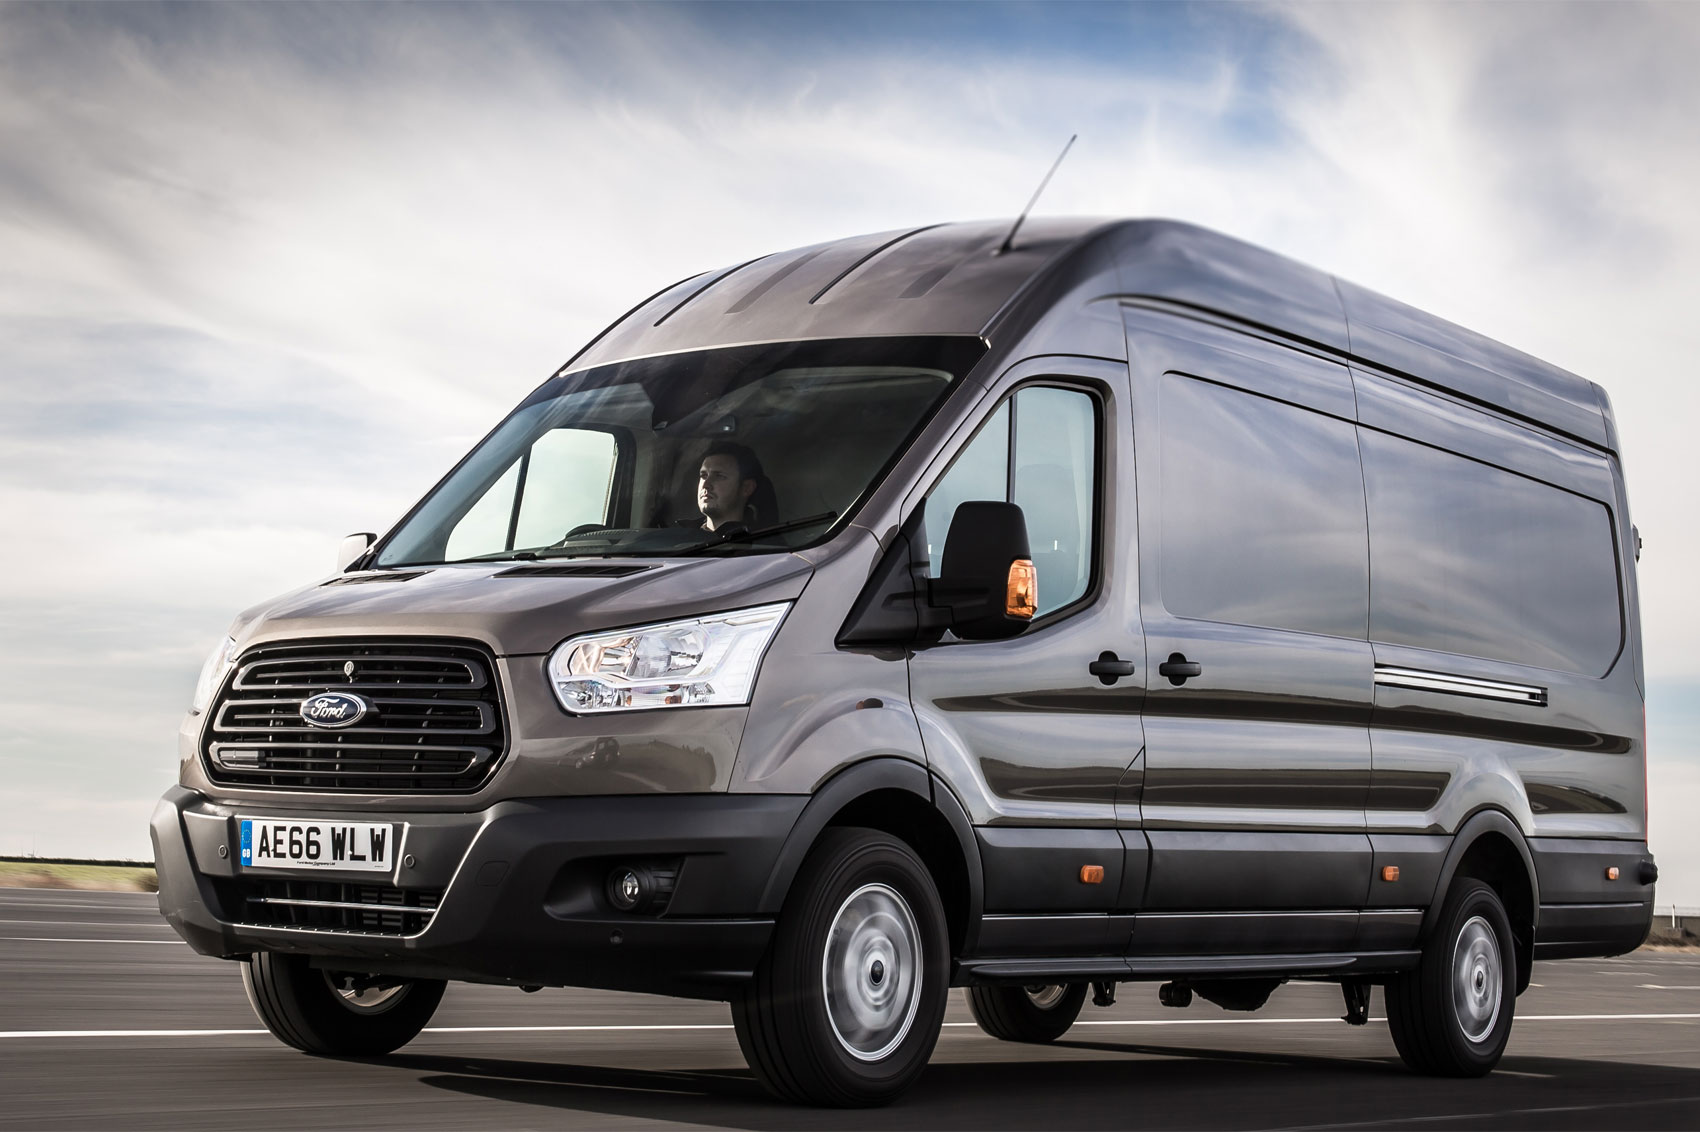 most reliable vans according to the 2017 fn50 van reliability survey parkers. Black Bedroom Furniture Sets. Home Design Ideas